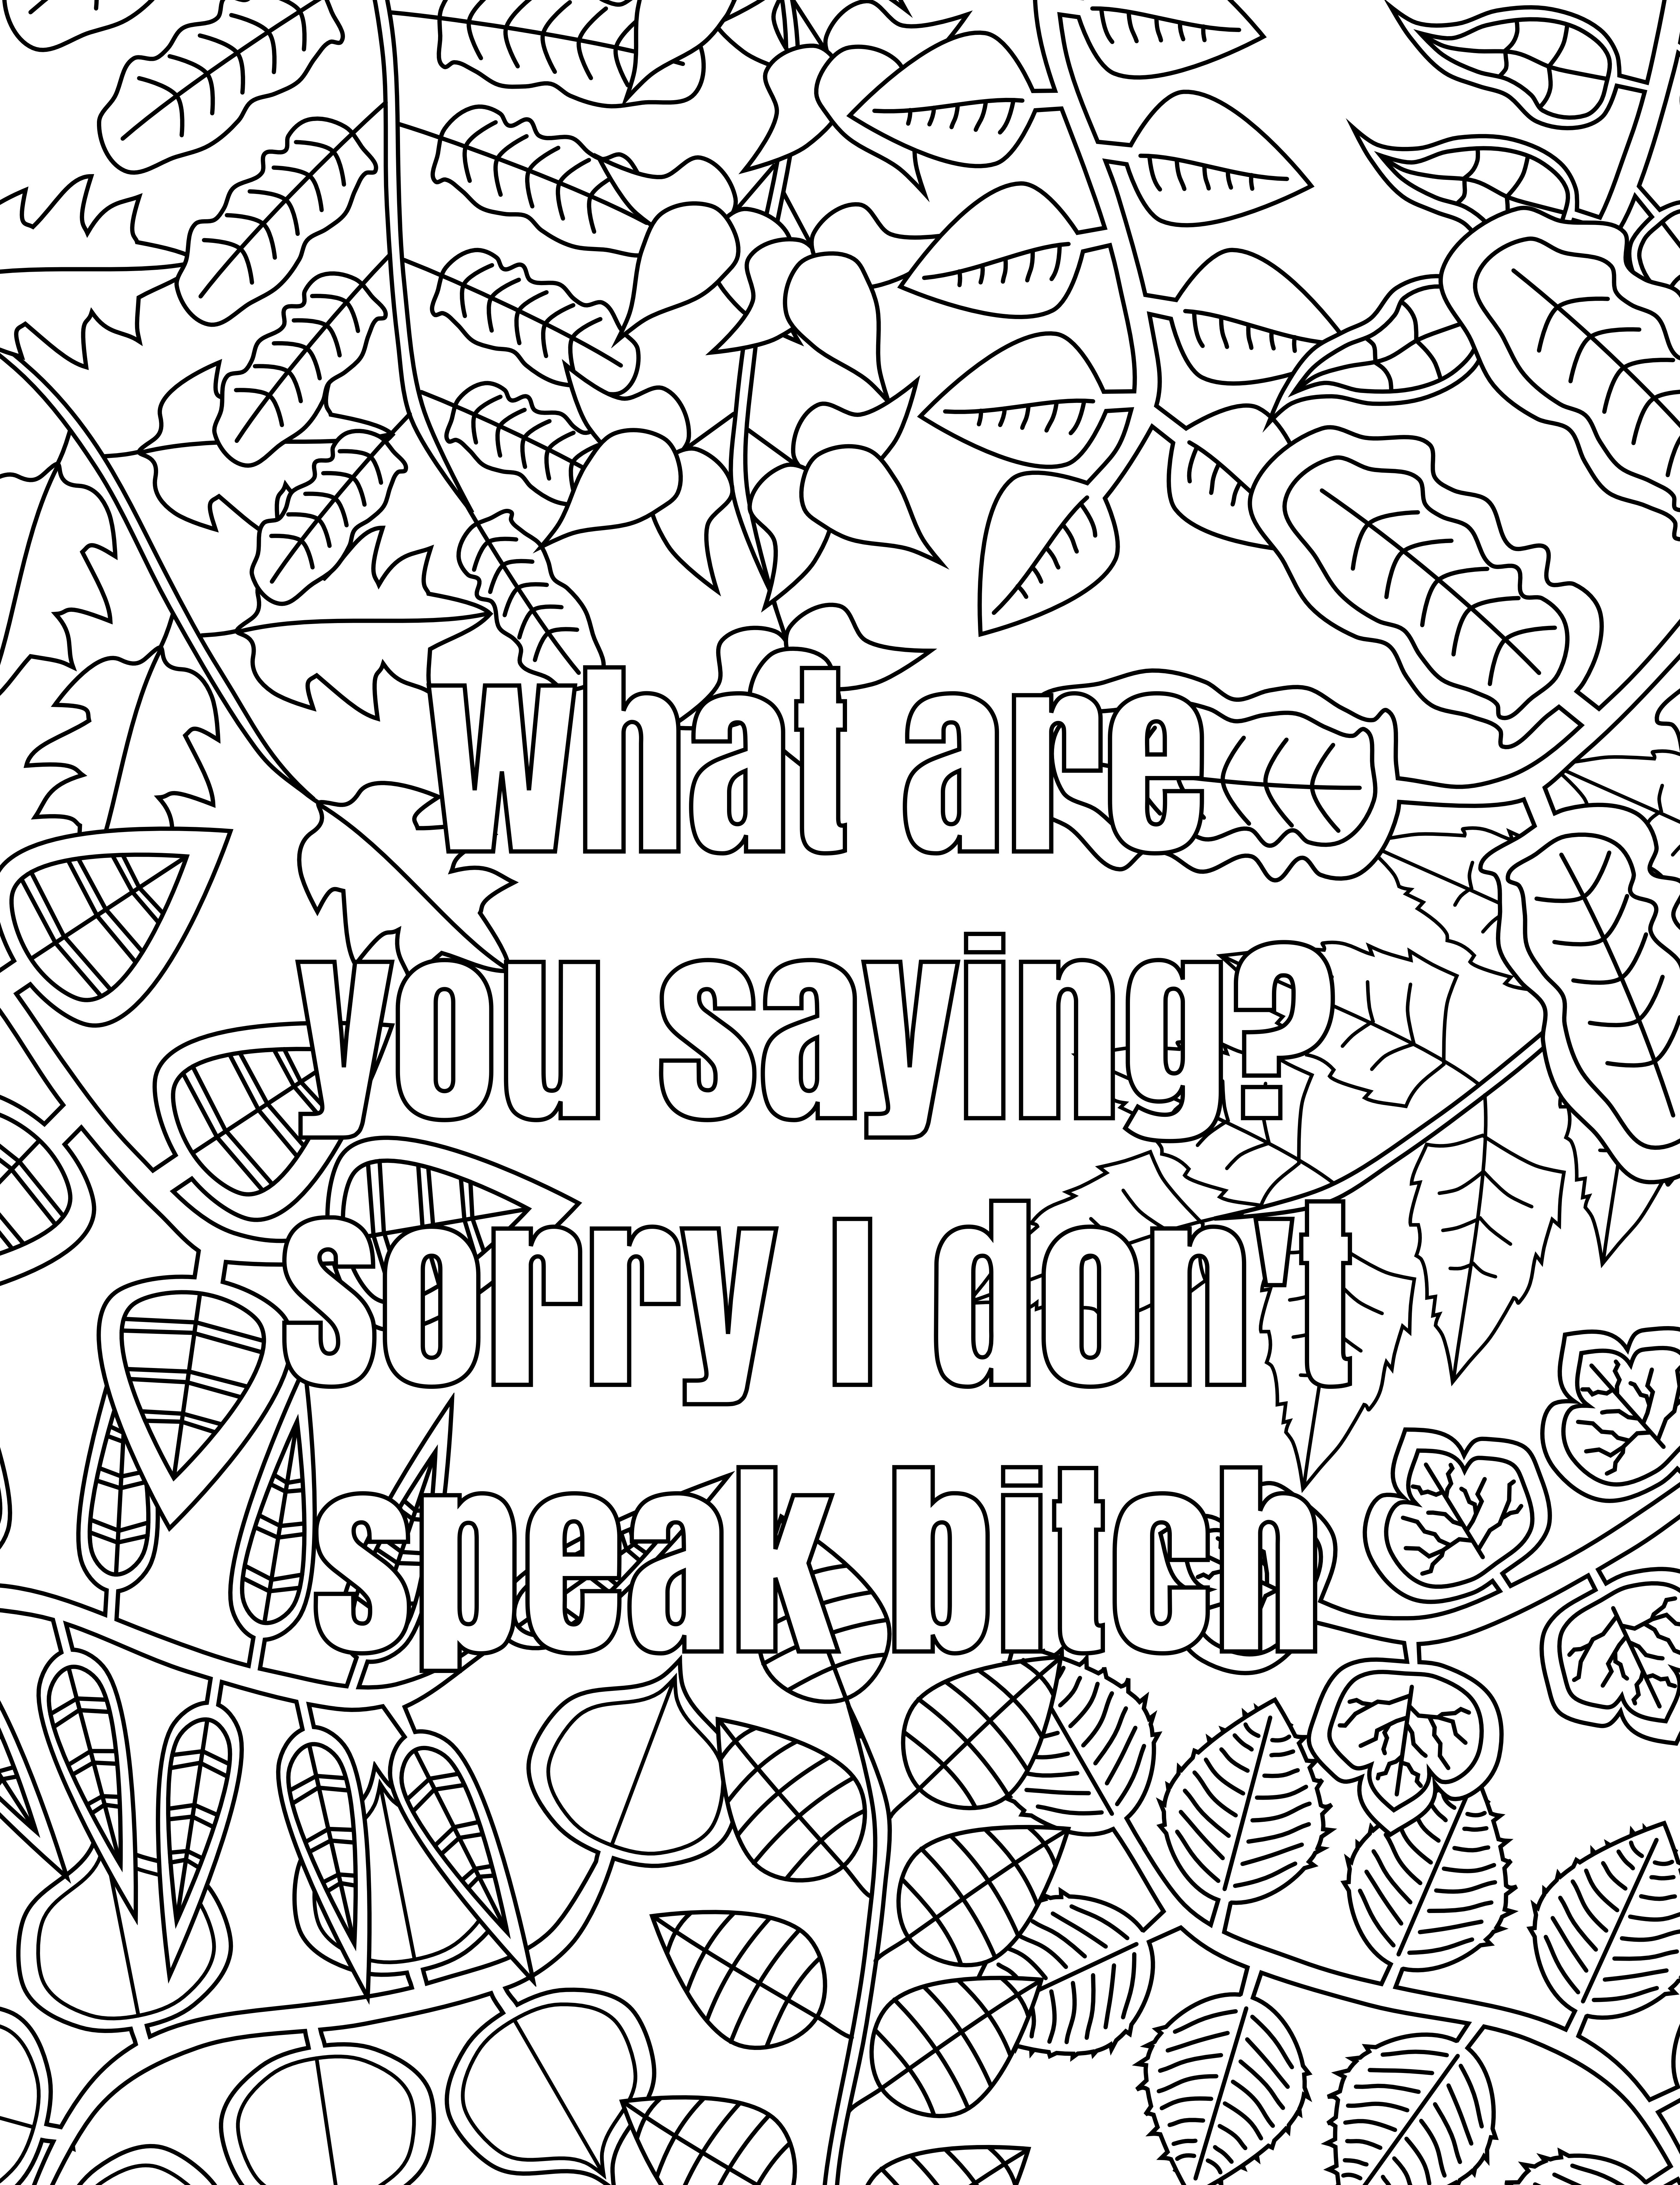 Free Printable Coloring Pages For Adults Only Swear Words Download - Free Printable Swear Word Coloring Pages